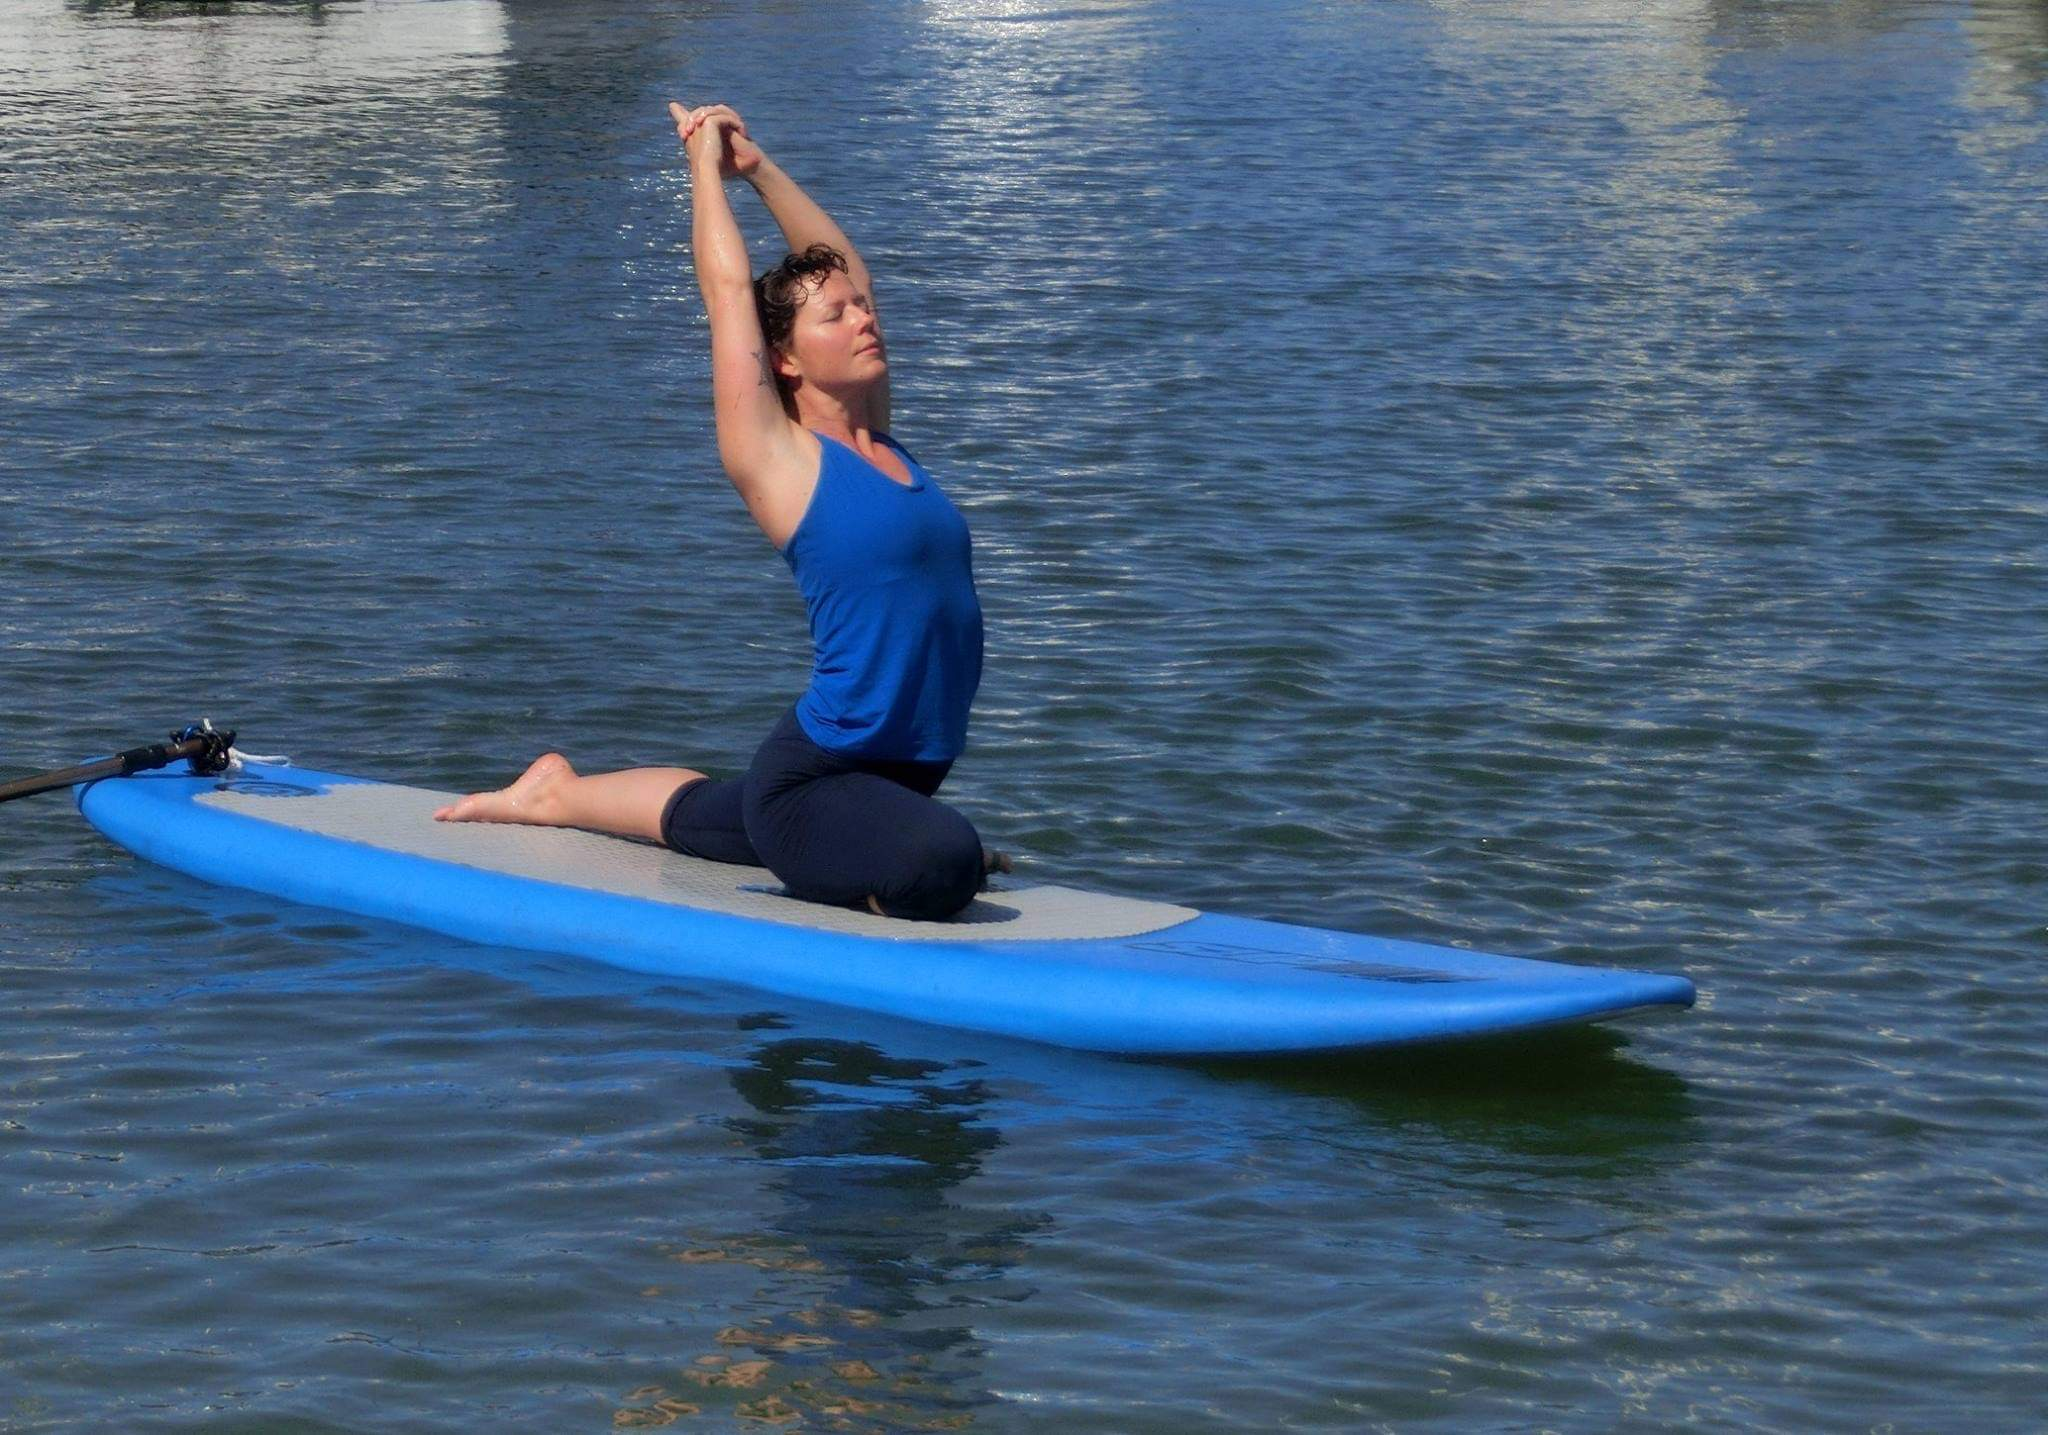 Lisa in Pigeon Pose on a SUP board.